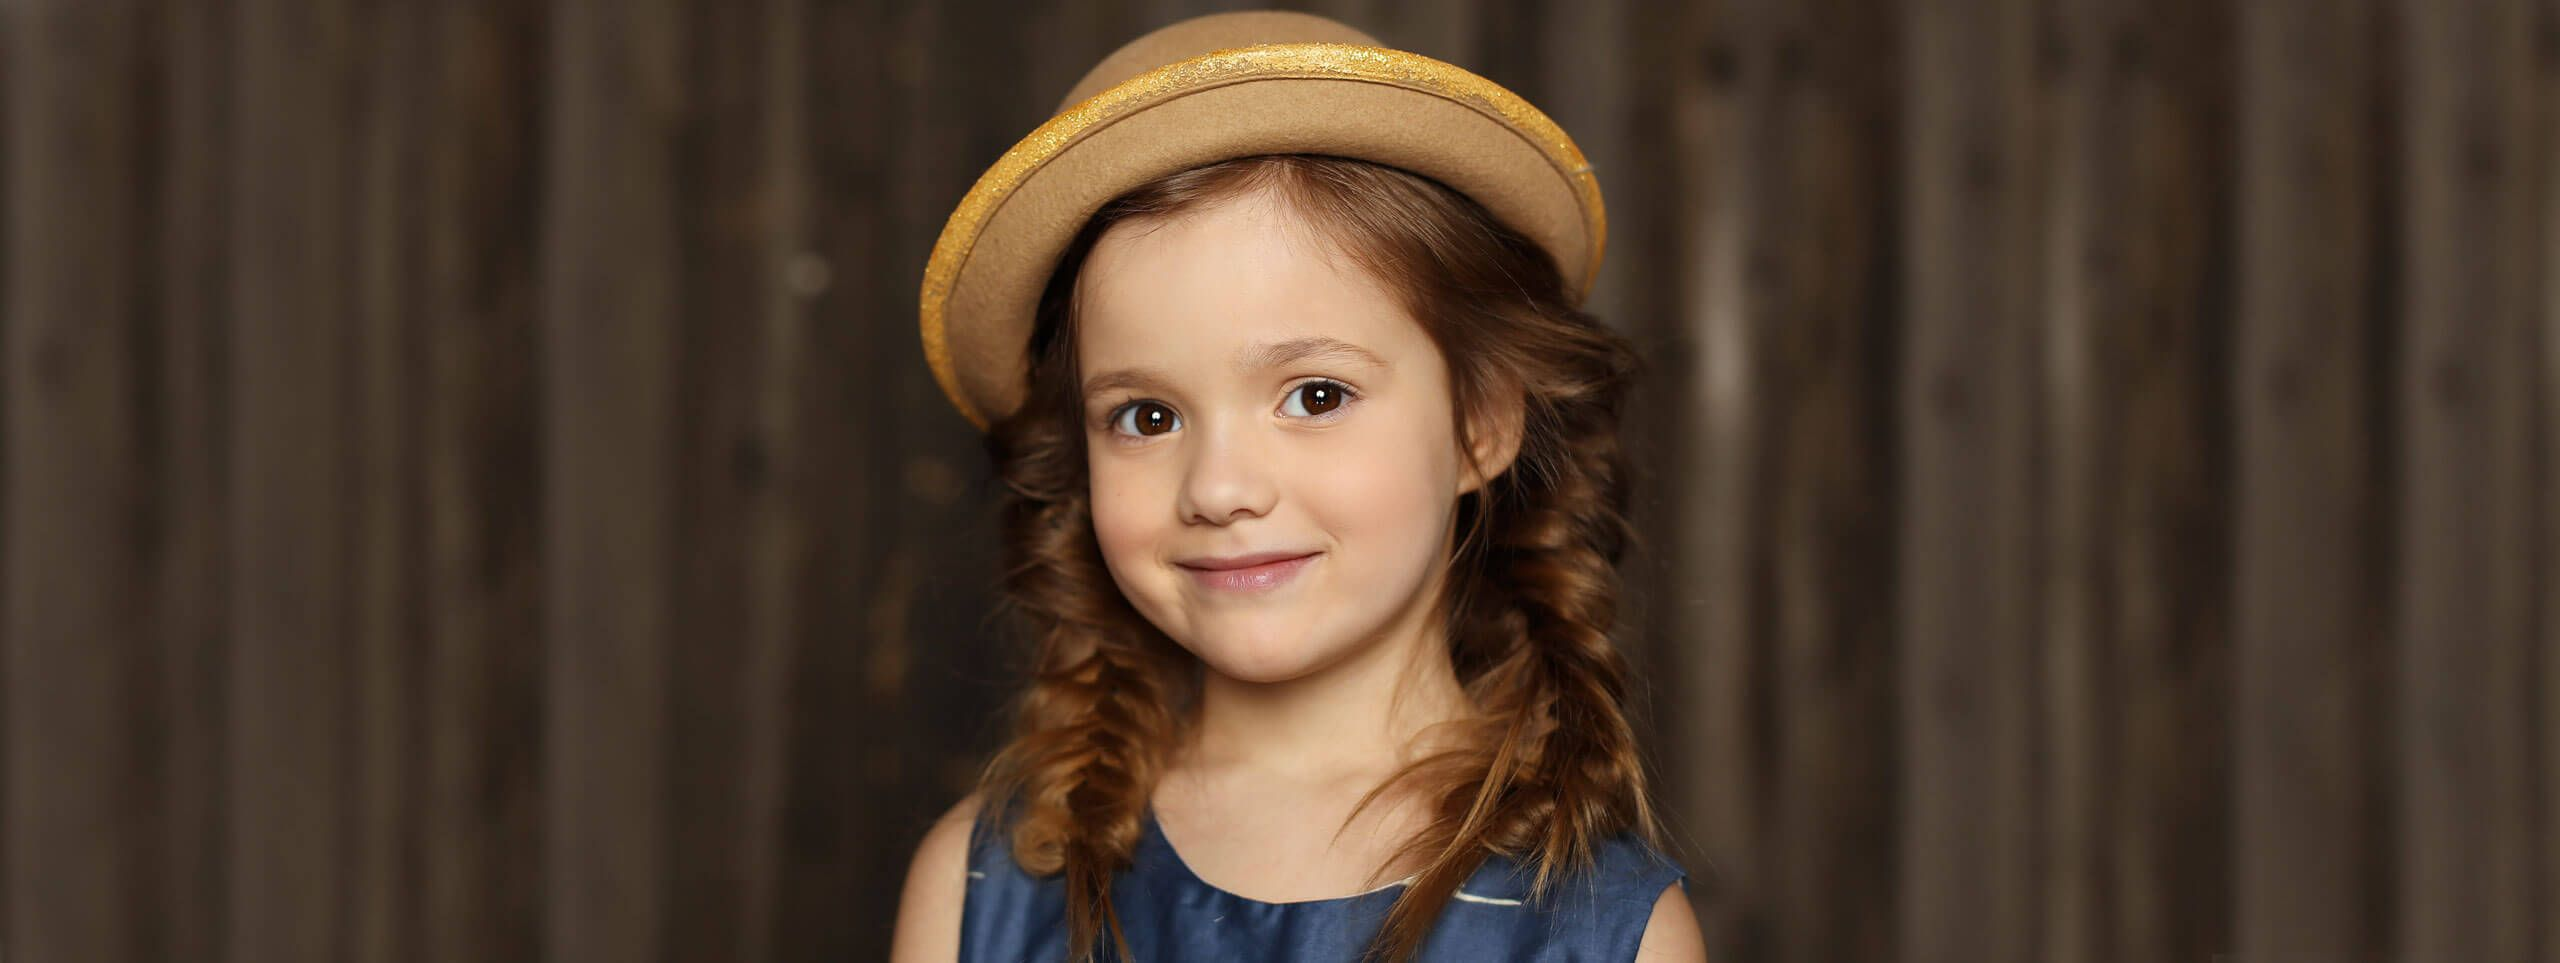 Little girl with curly hairstyle wearing a hat